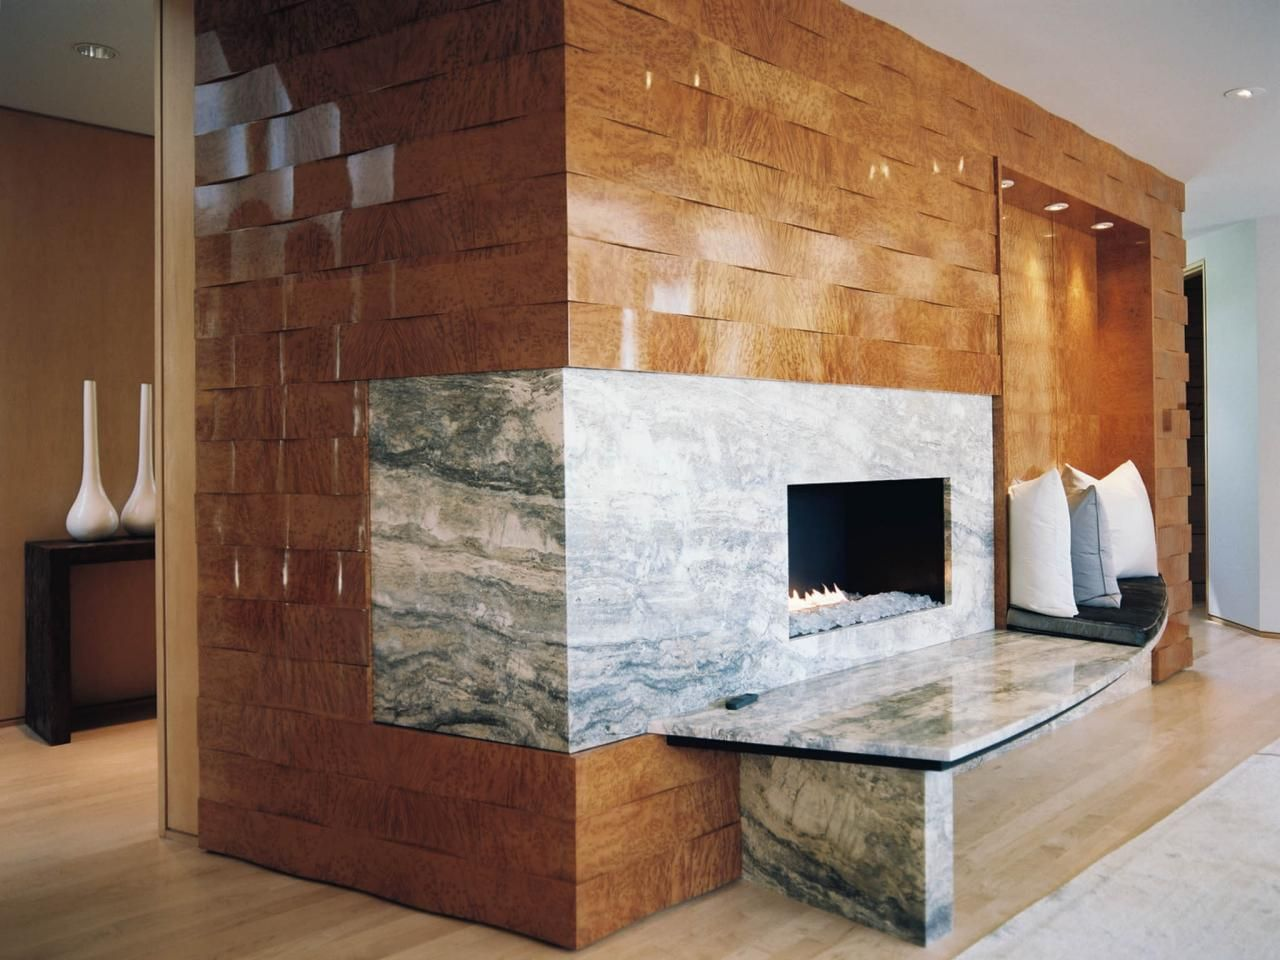 Contemporary Photo Woven wood walls and a